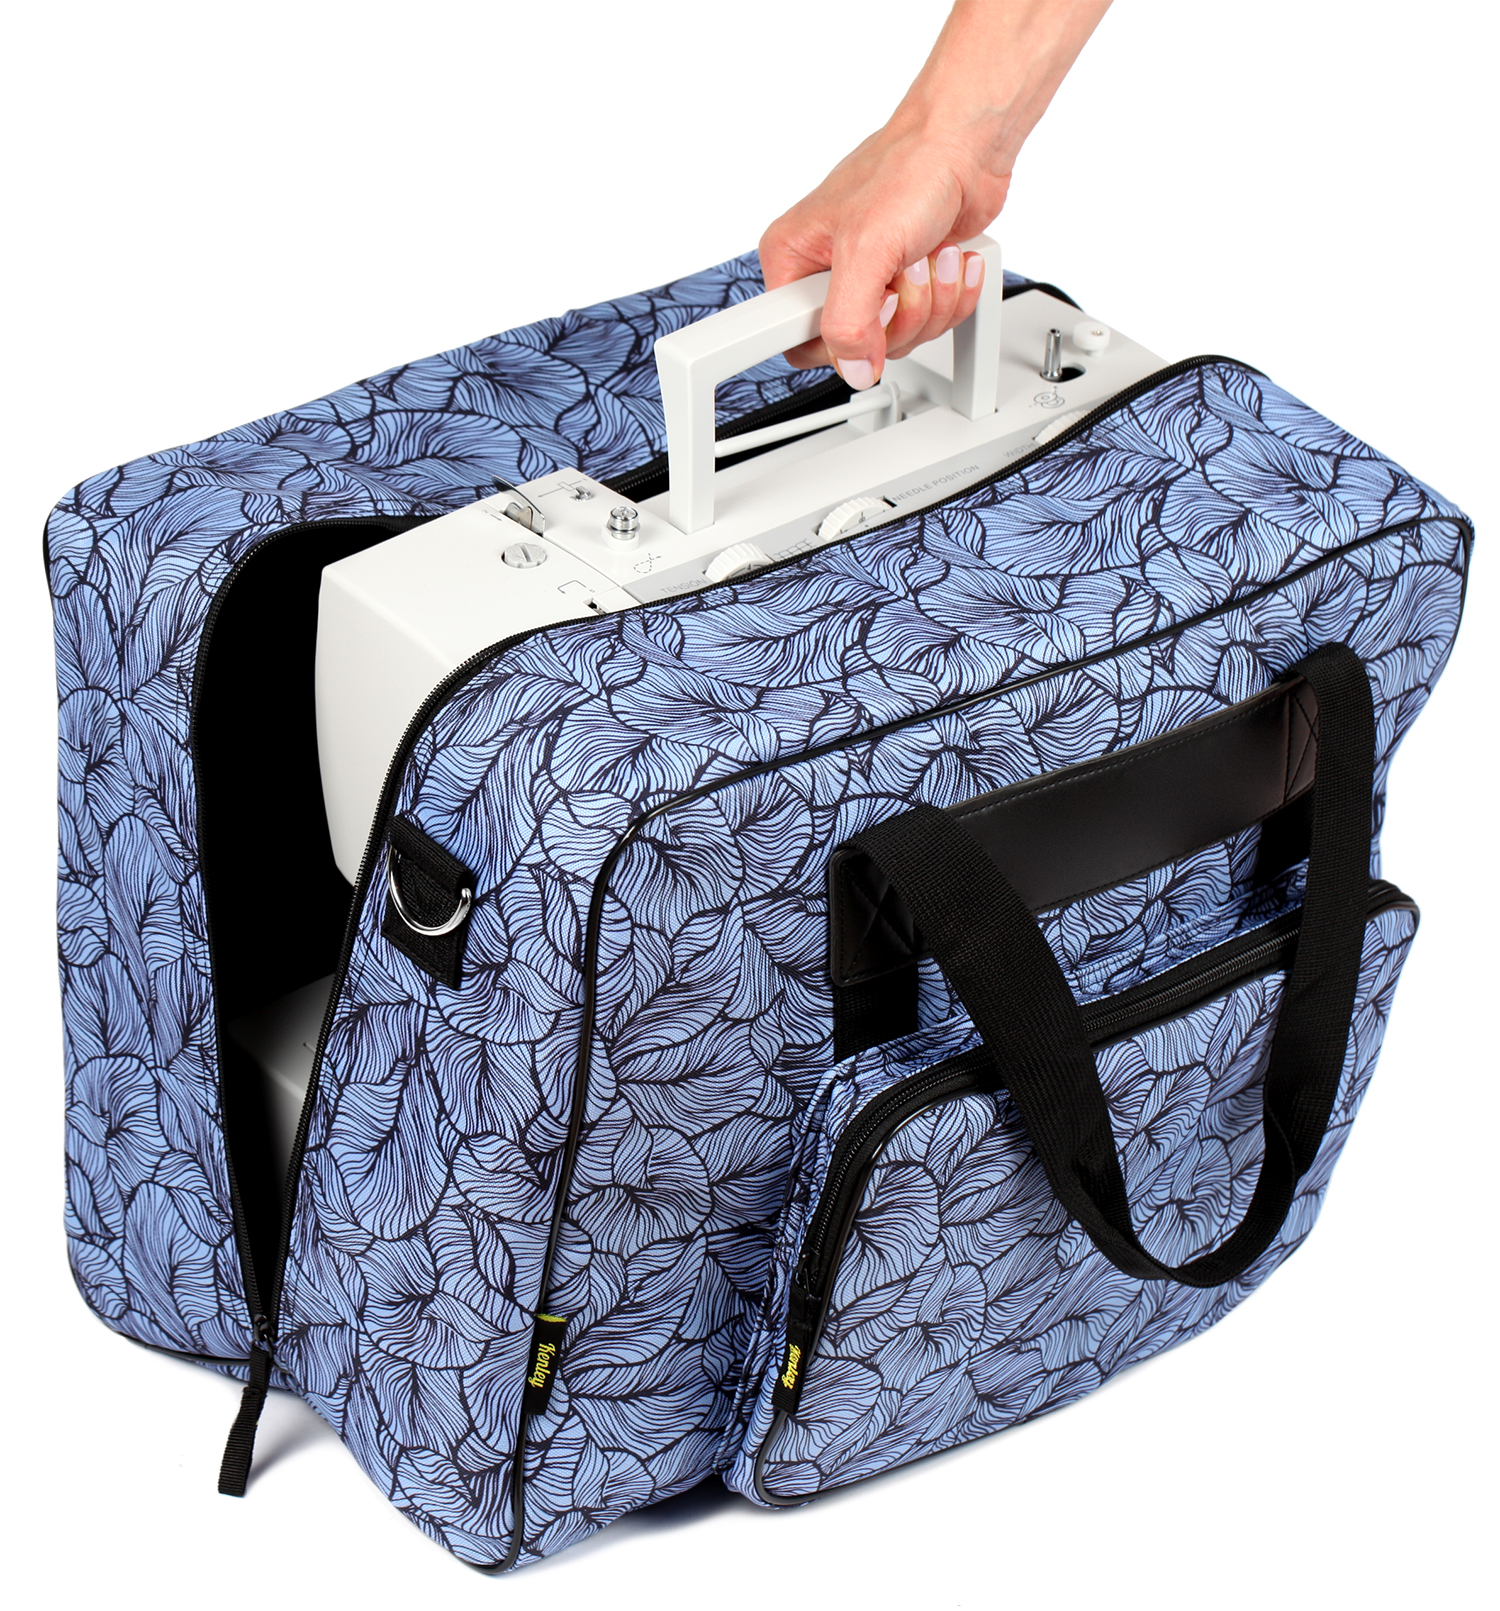 Kenley Padded Sewing Machine Tote Bag Carrying Case Fits